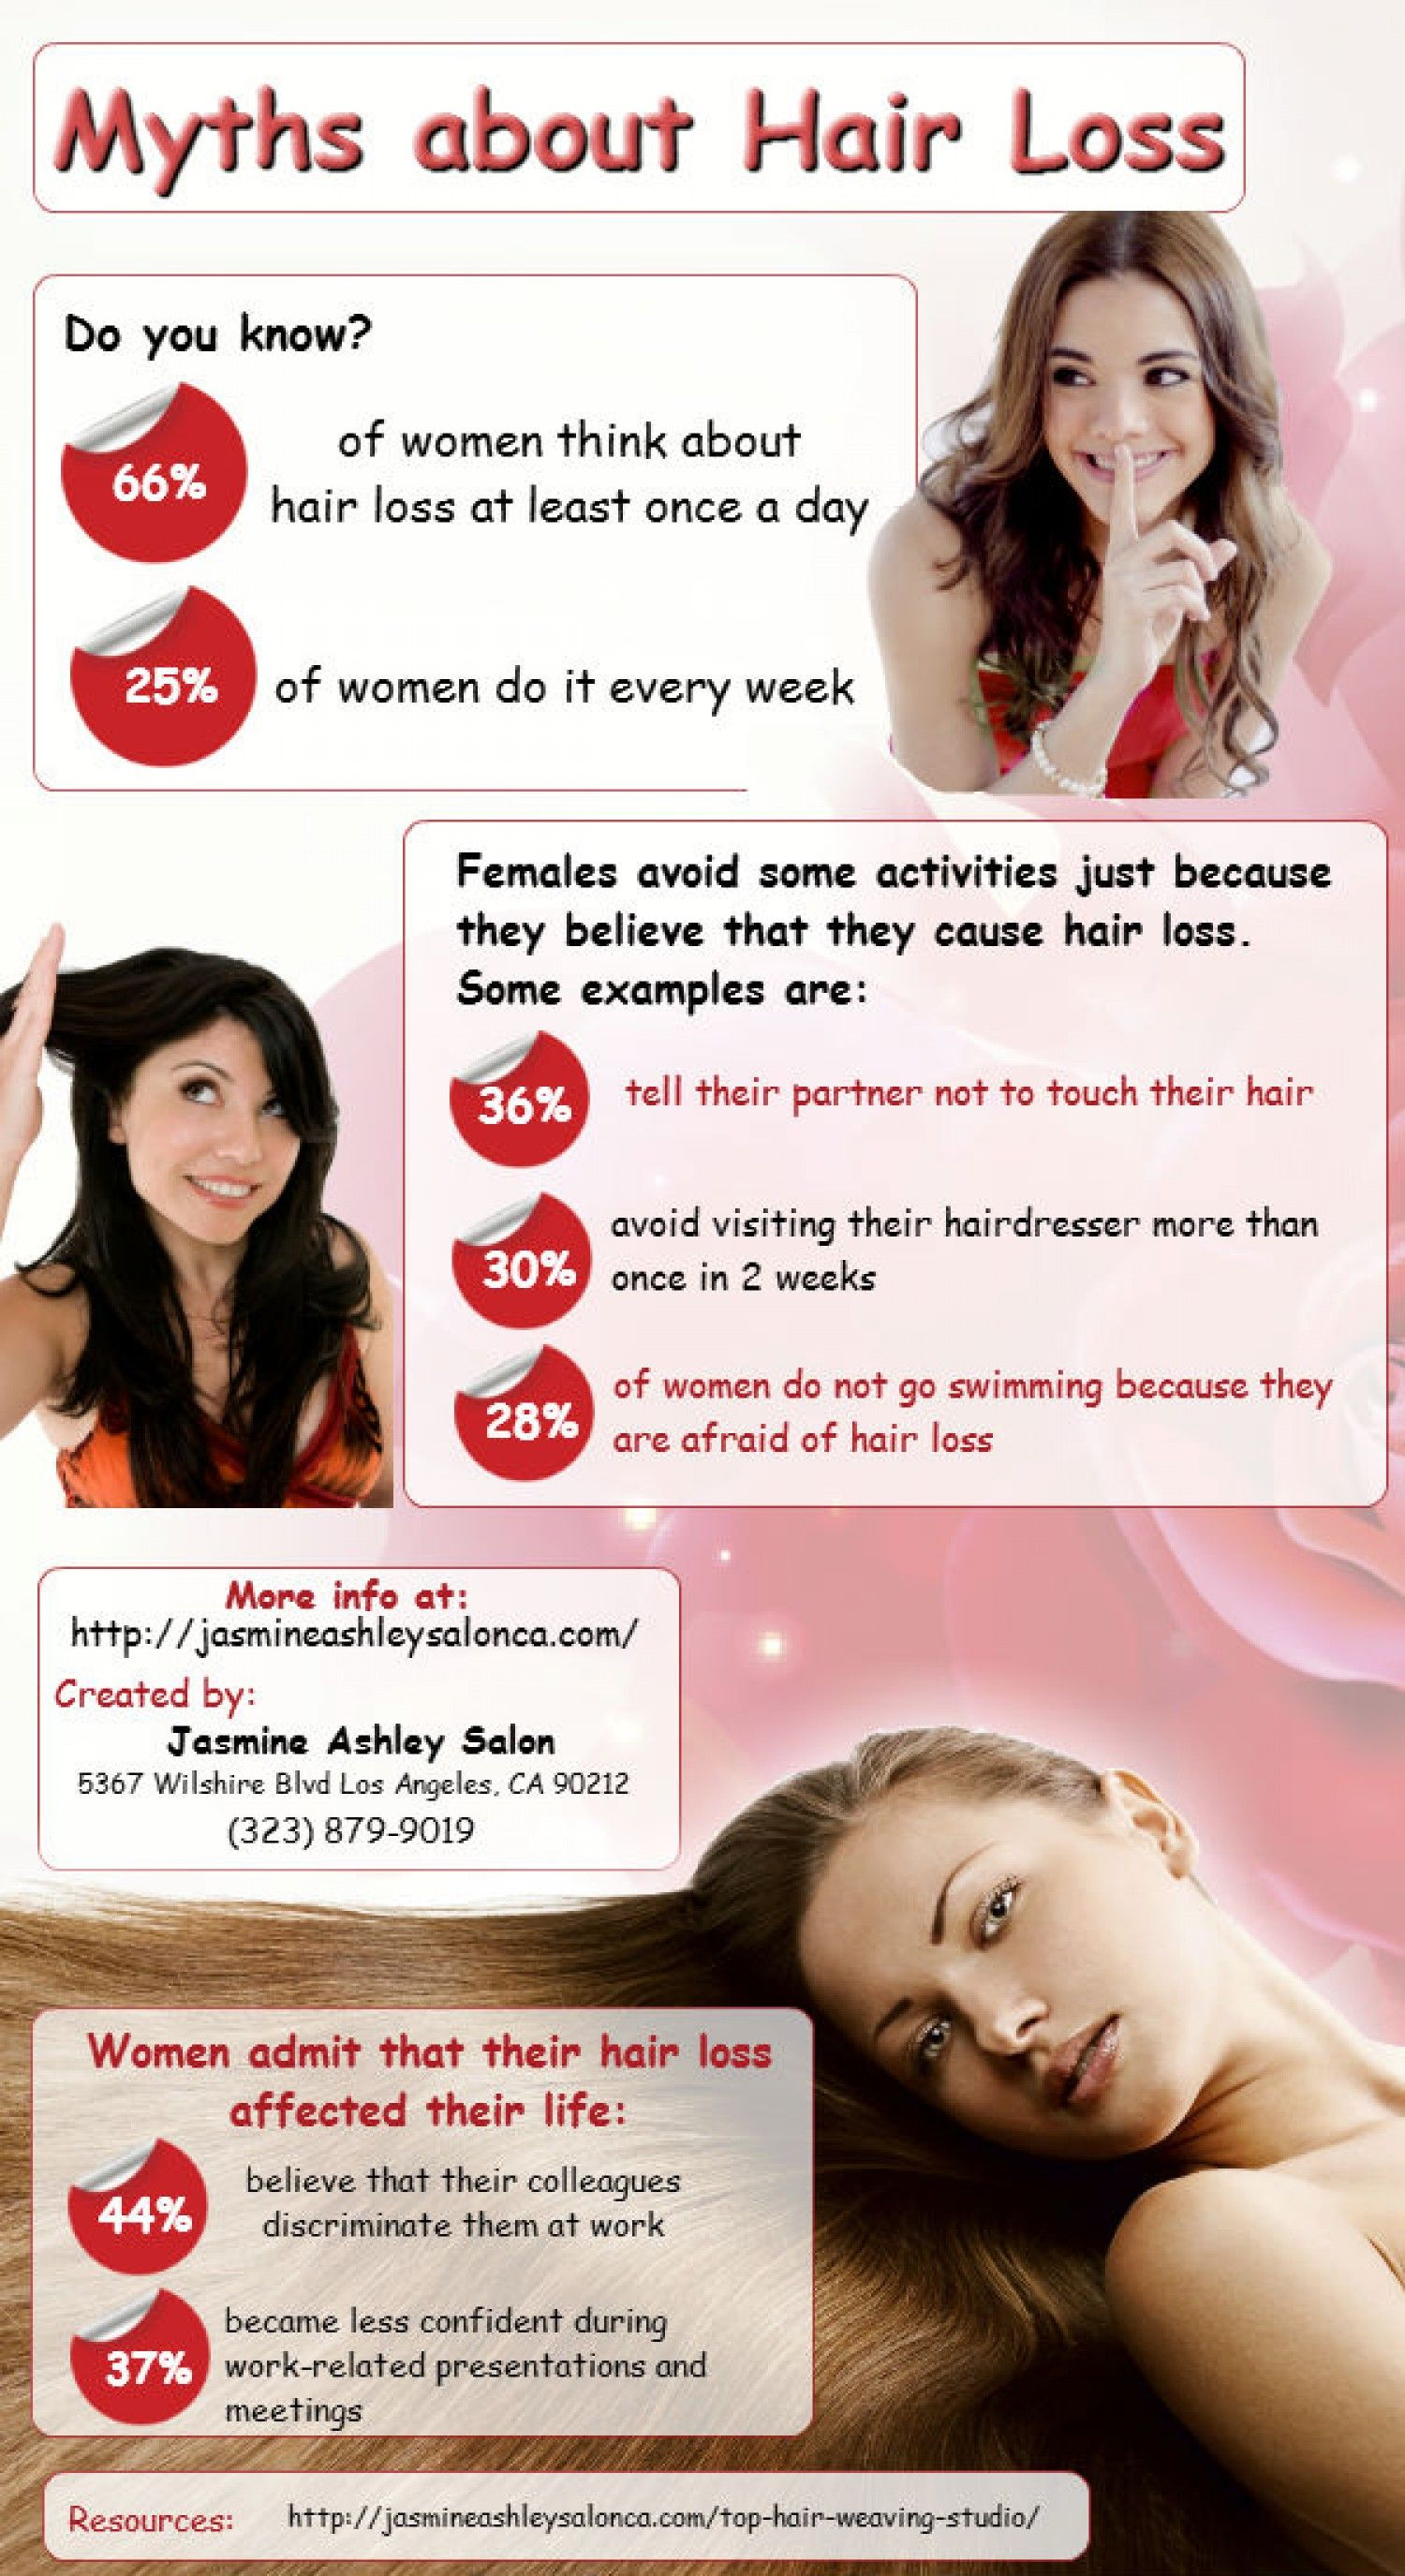 Myths about hair loss infographic provillus hair loss treatment myths about hair loss infographic provillus hair loss treatment for thinning hair or hair loss pmusecretfo Images